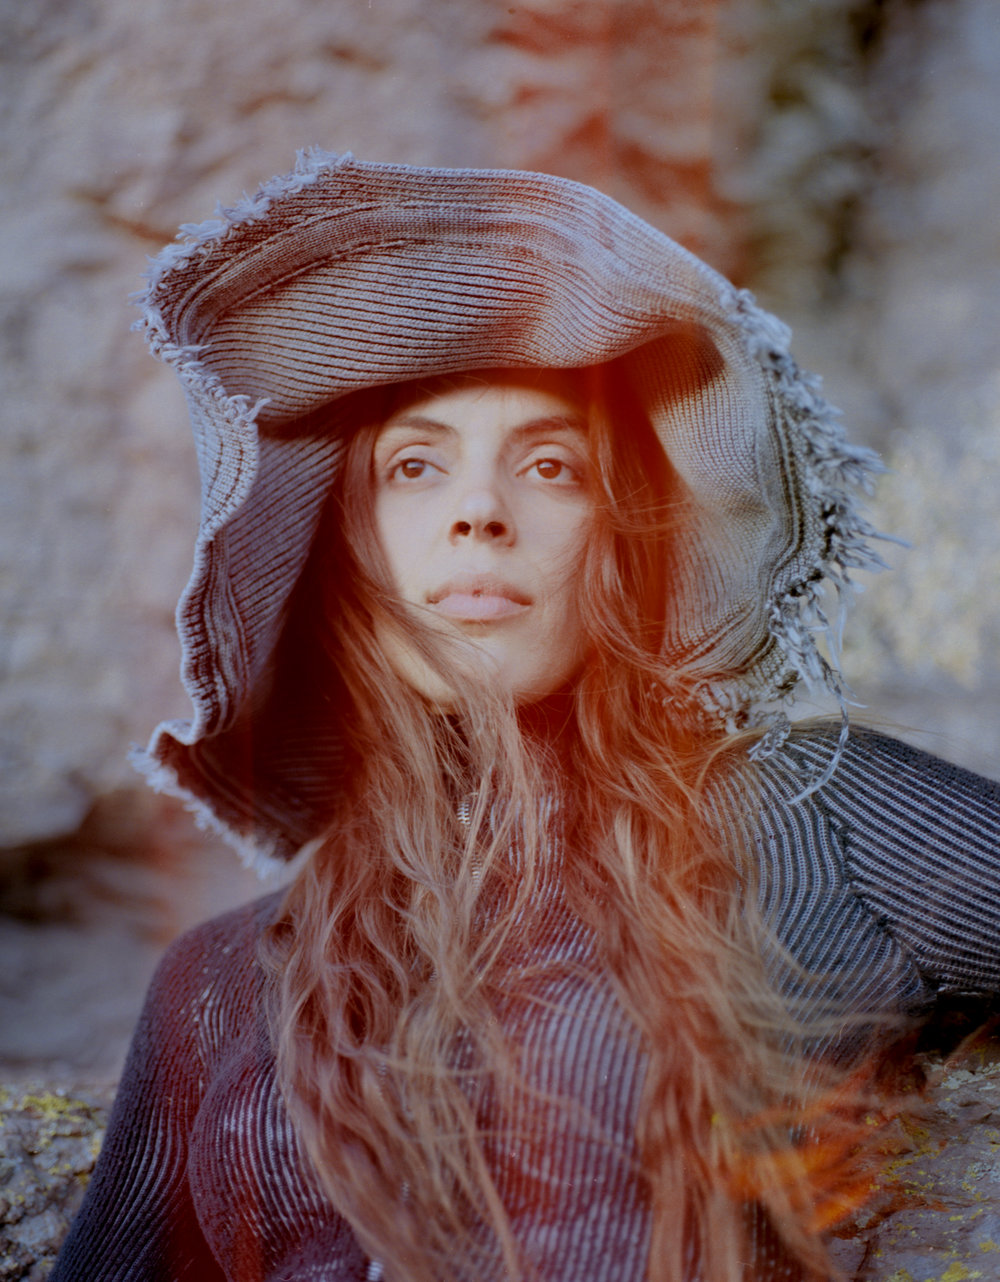 Julie Byrne photographed by Tonje Thilesen